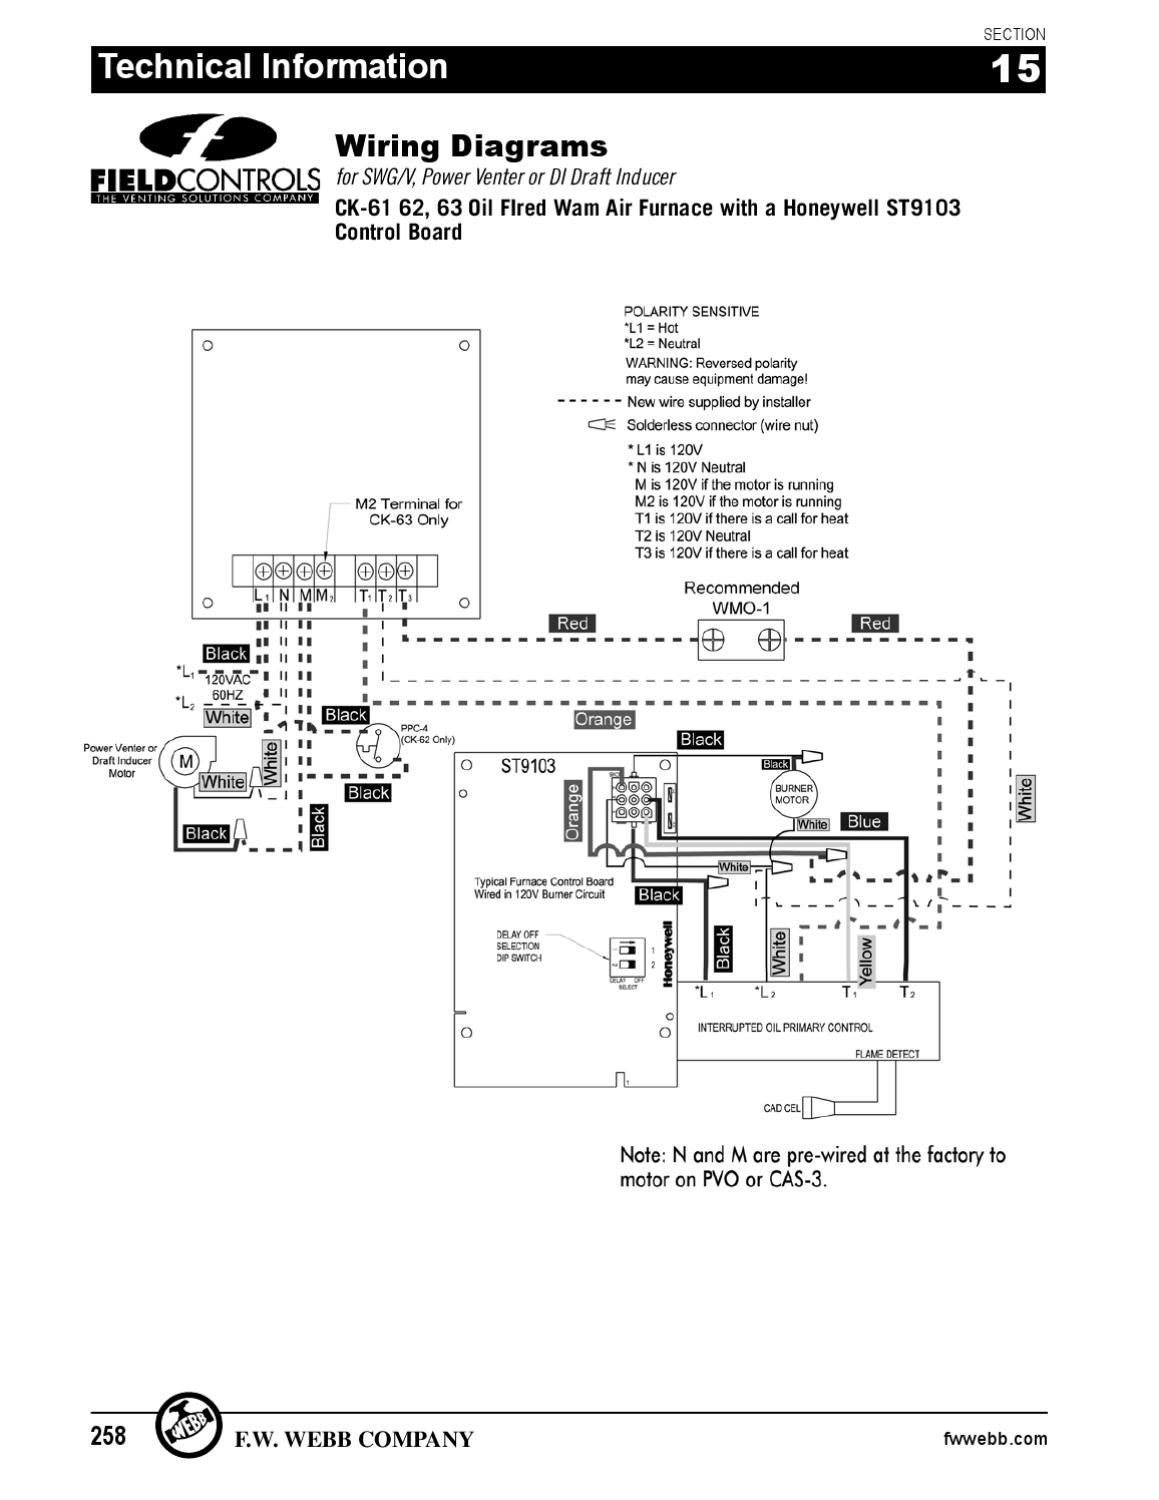 wiring diagram for venter trailer with Fantastic Fan Wiring Diagram on Wiring Harness South Africa also Featherlite Trailer Wiring Harness in addition Fantastic Fan Wiring Diagram as well N8mpn075b12a1 Wiring Diagram together with Trailer Wiring Diagrams.